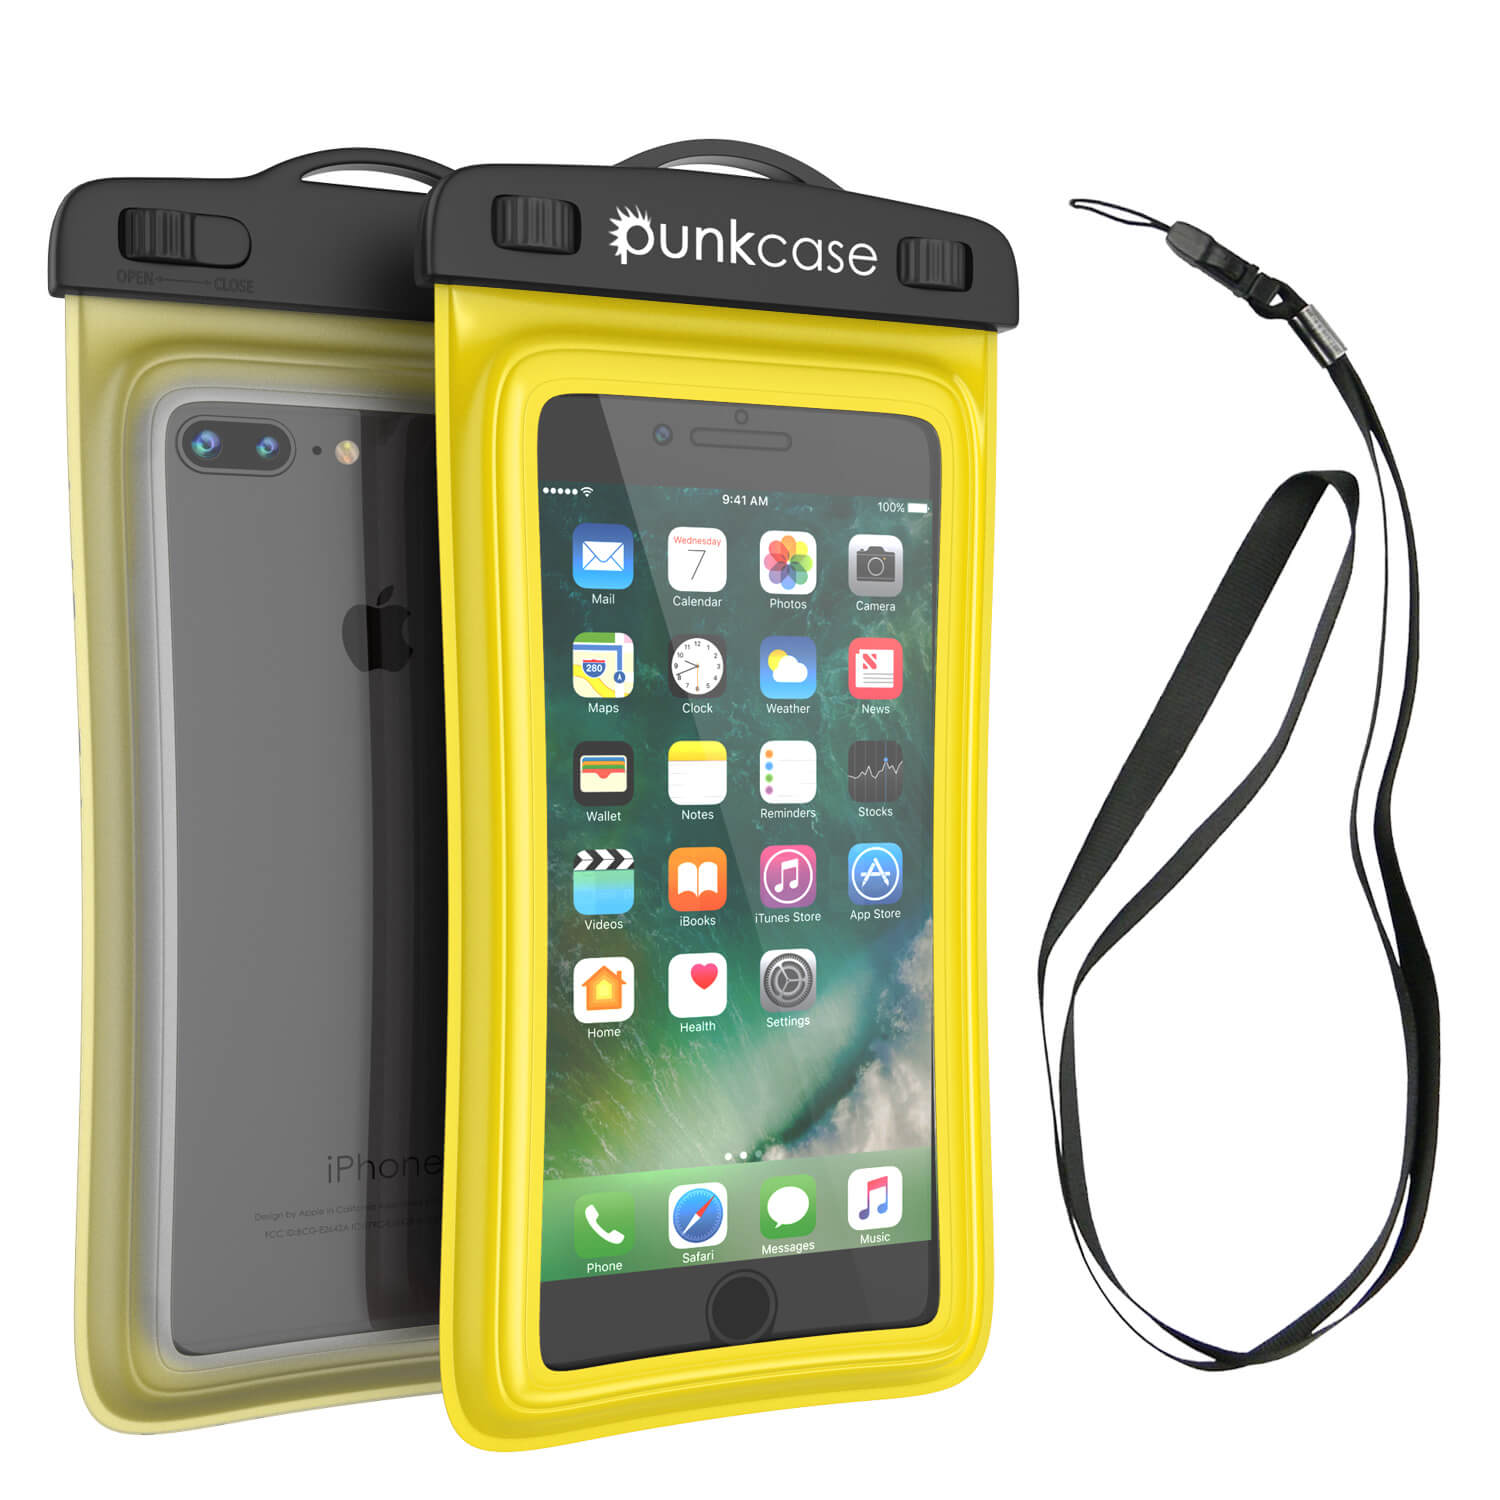 Waterproof Phone Pouch, PunkBag Universal Floating Dry Case Bag for most Cell Phones [Yellow]